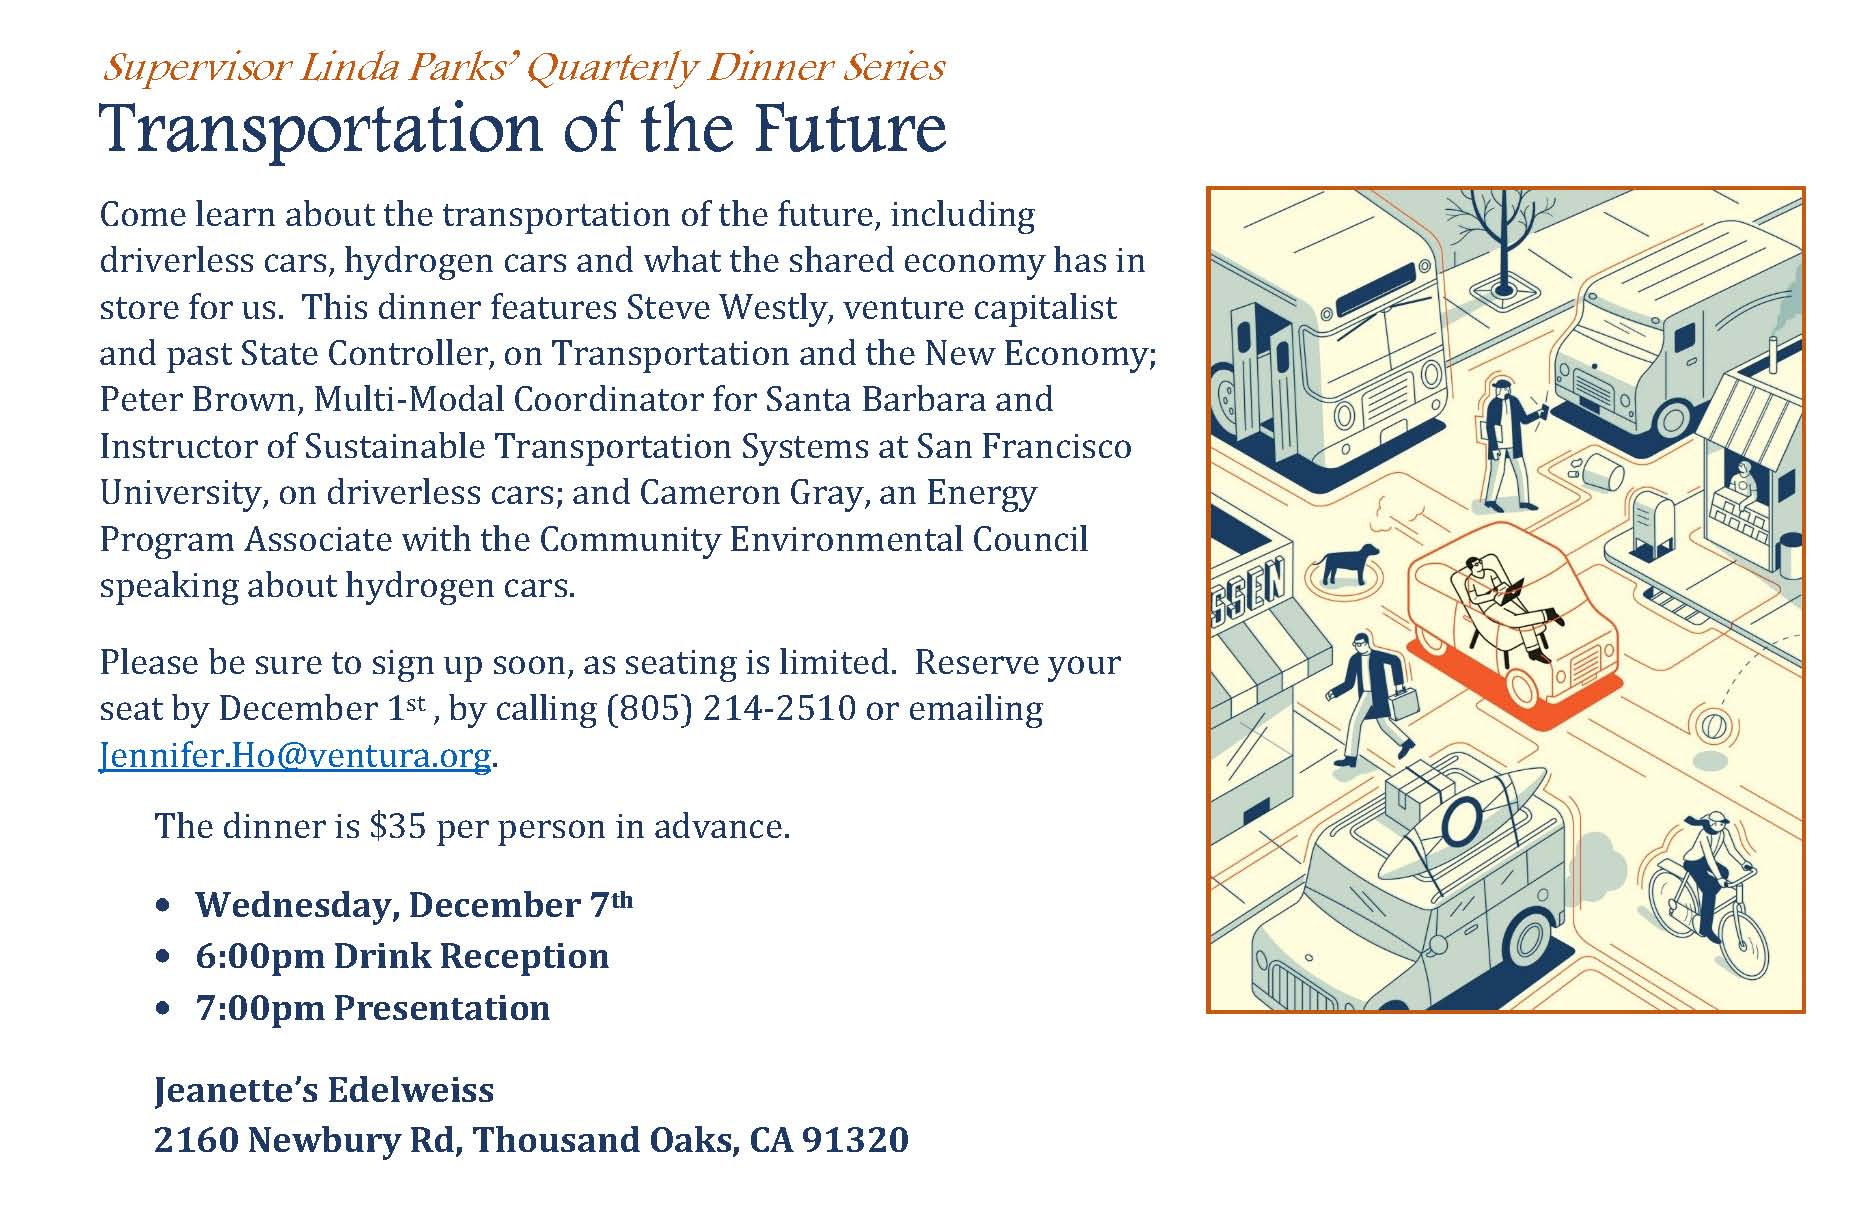 December 7 Dinner Event: Transportation of the Future